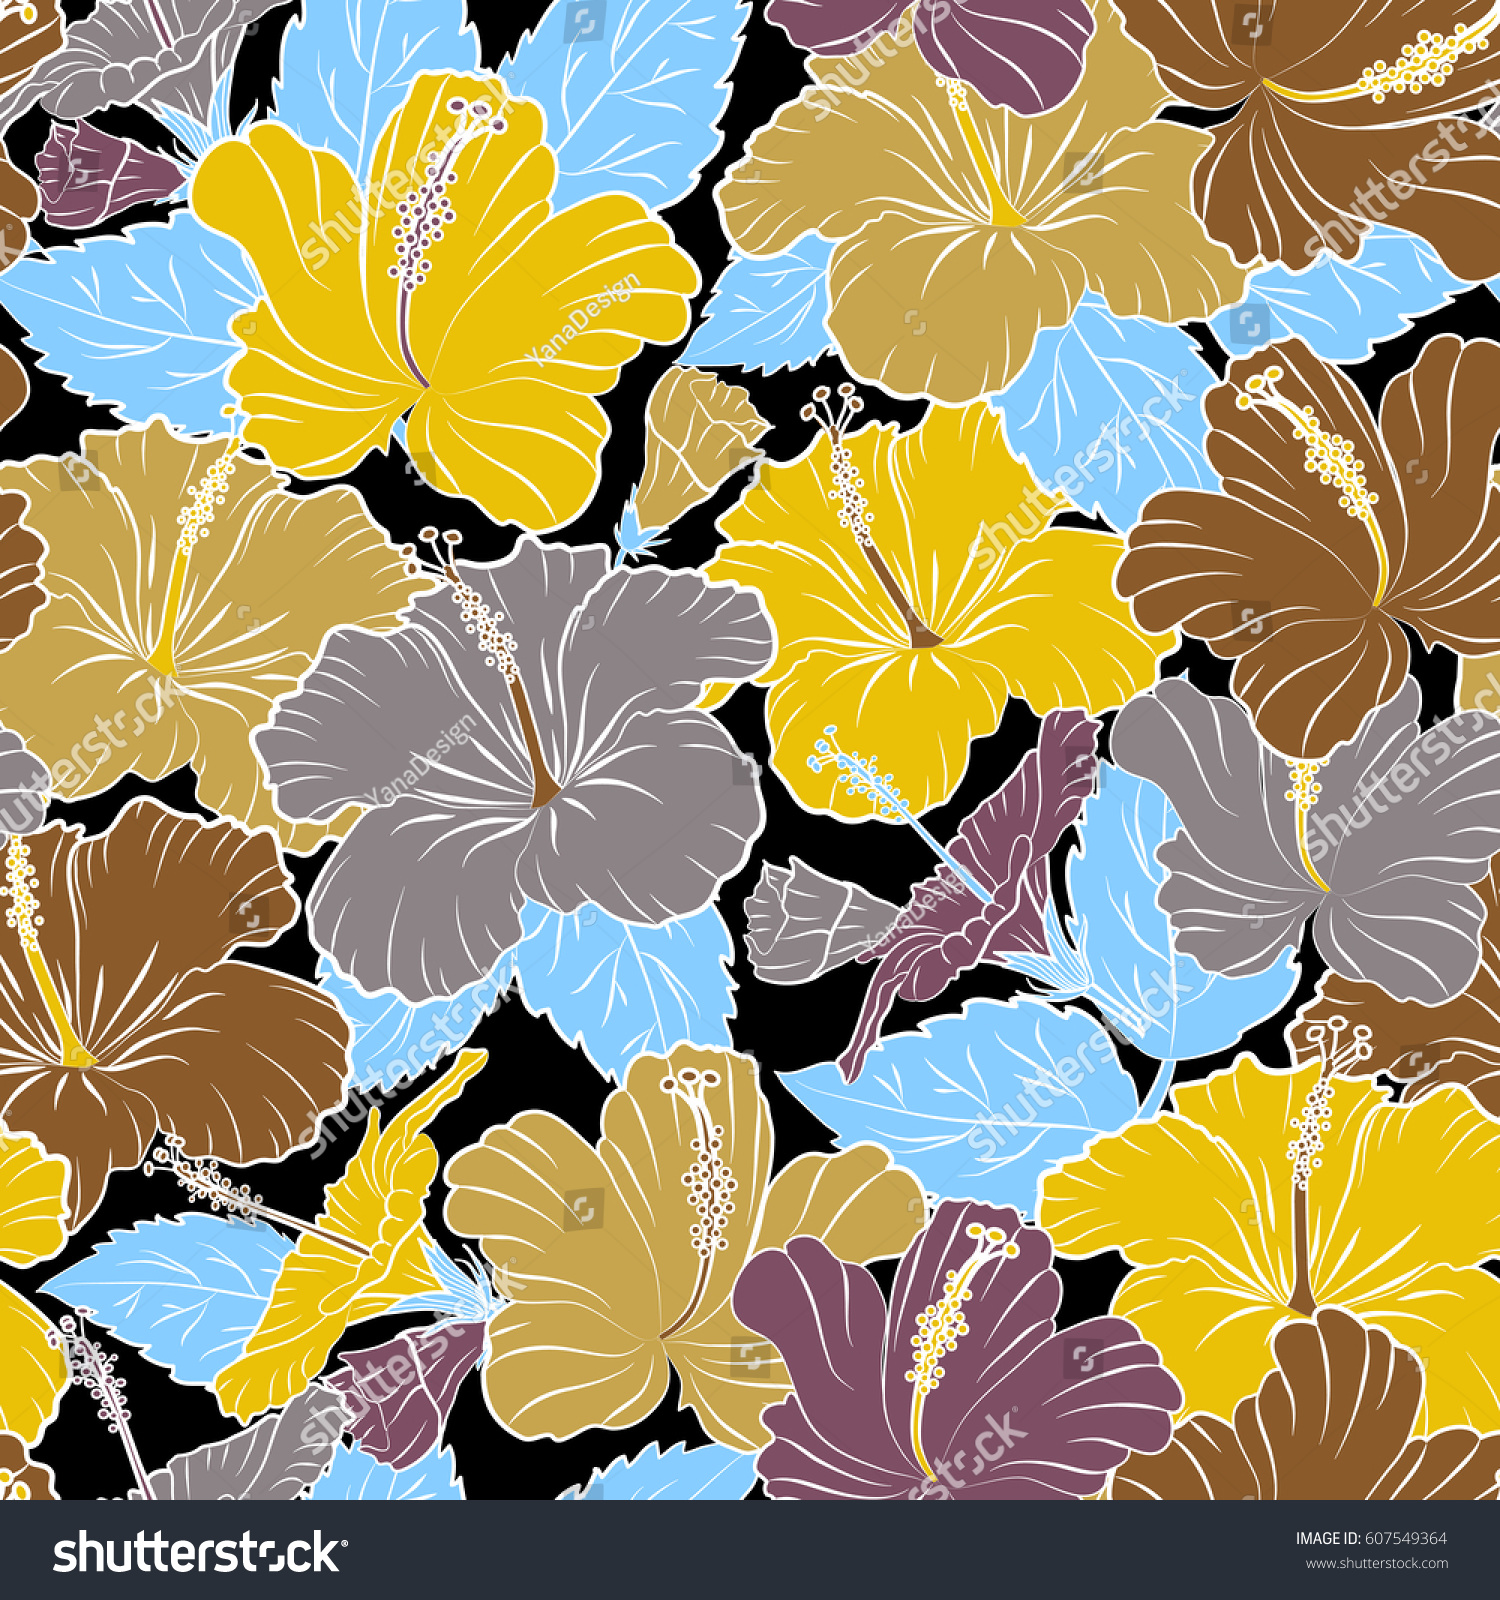 Vintage Vector Floral Seamless Pattern In Yellow And Blue Colors